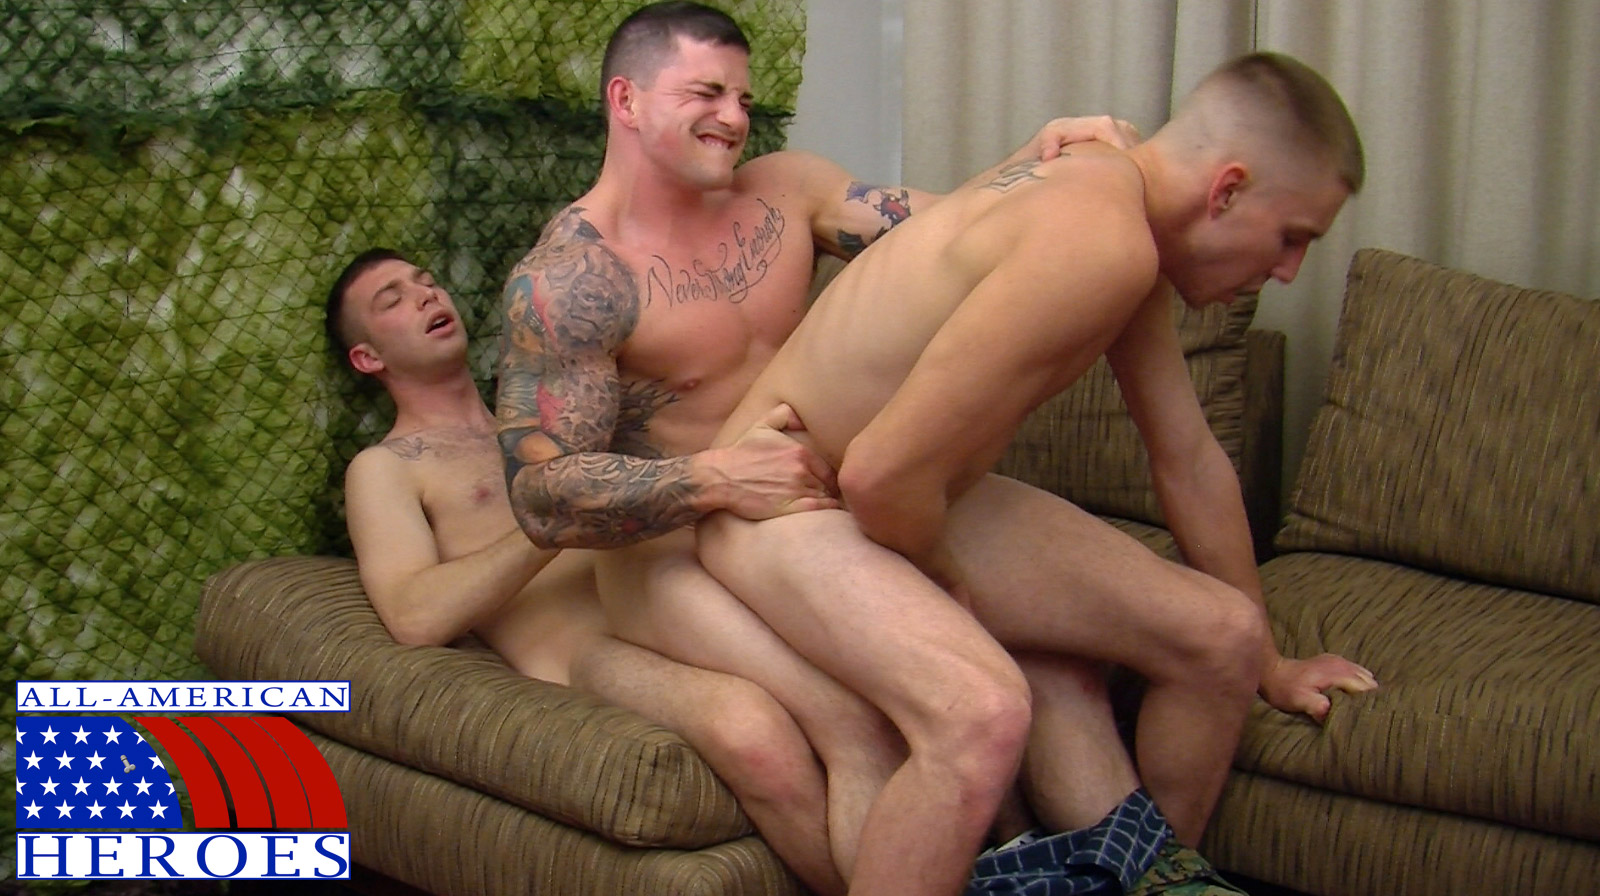 All-American-Heroes-Sergeant-Slate-Triple-fucking-big-cocks-Army-guys-Amateur-Gay-Porn-11 Two Real Army Privates Fuck Their Muscle Sergeant and Cum In His Mouth